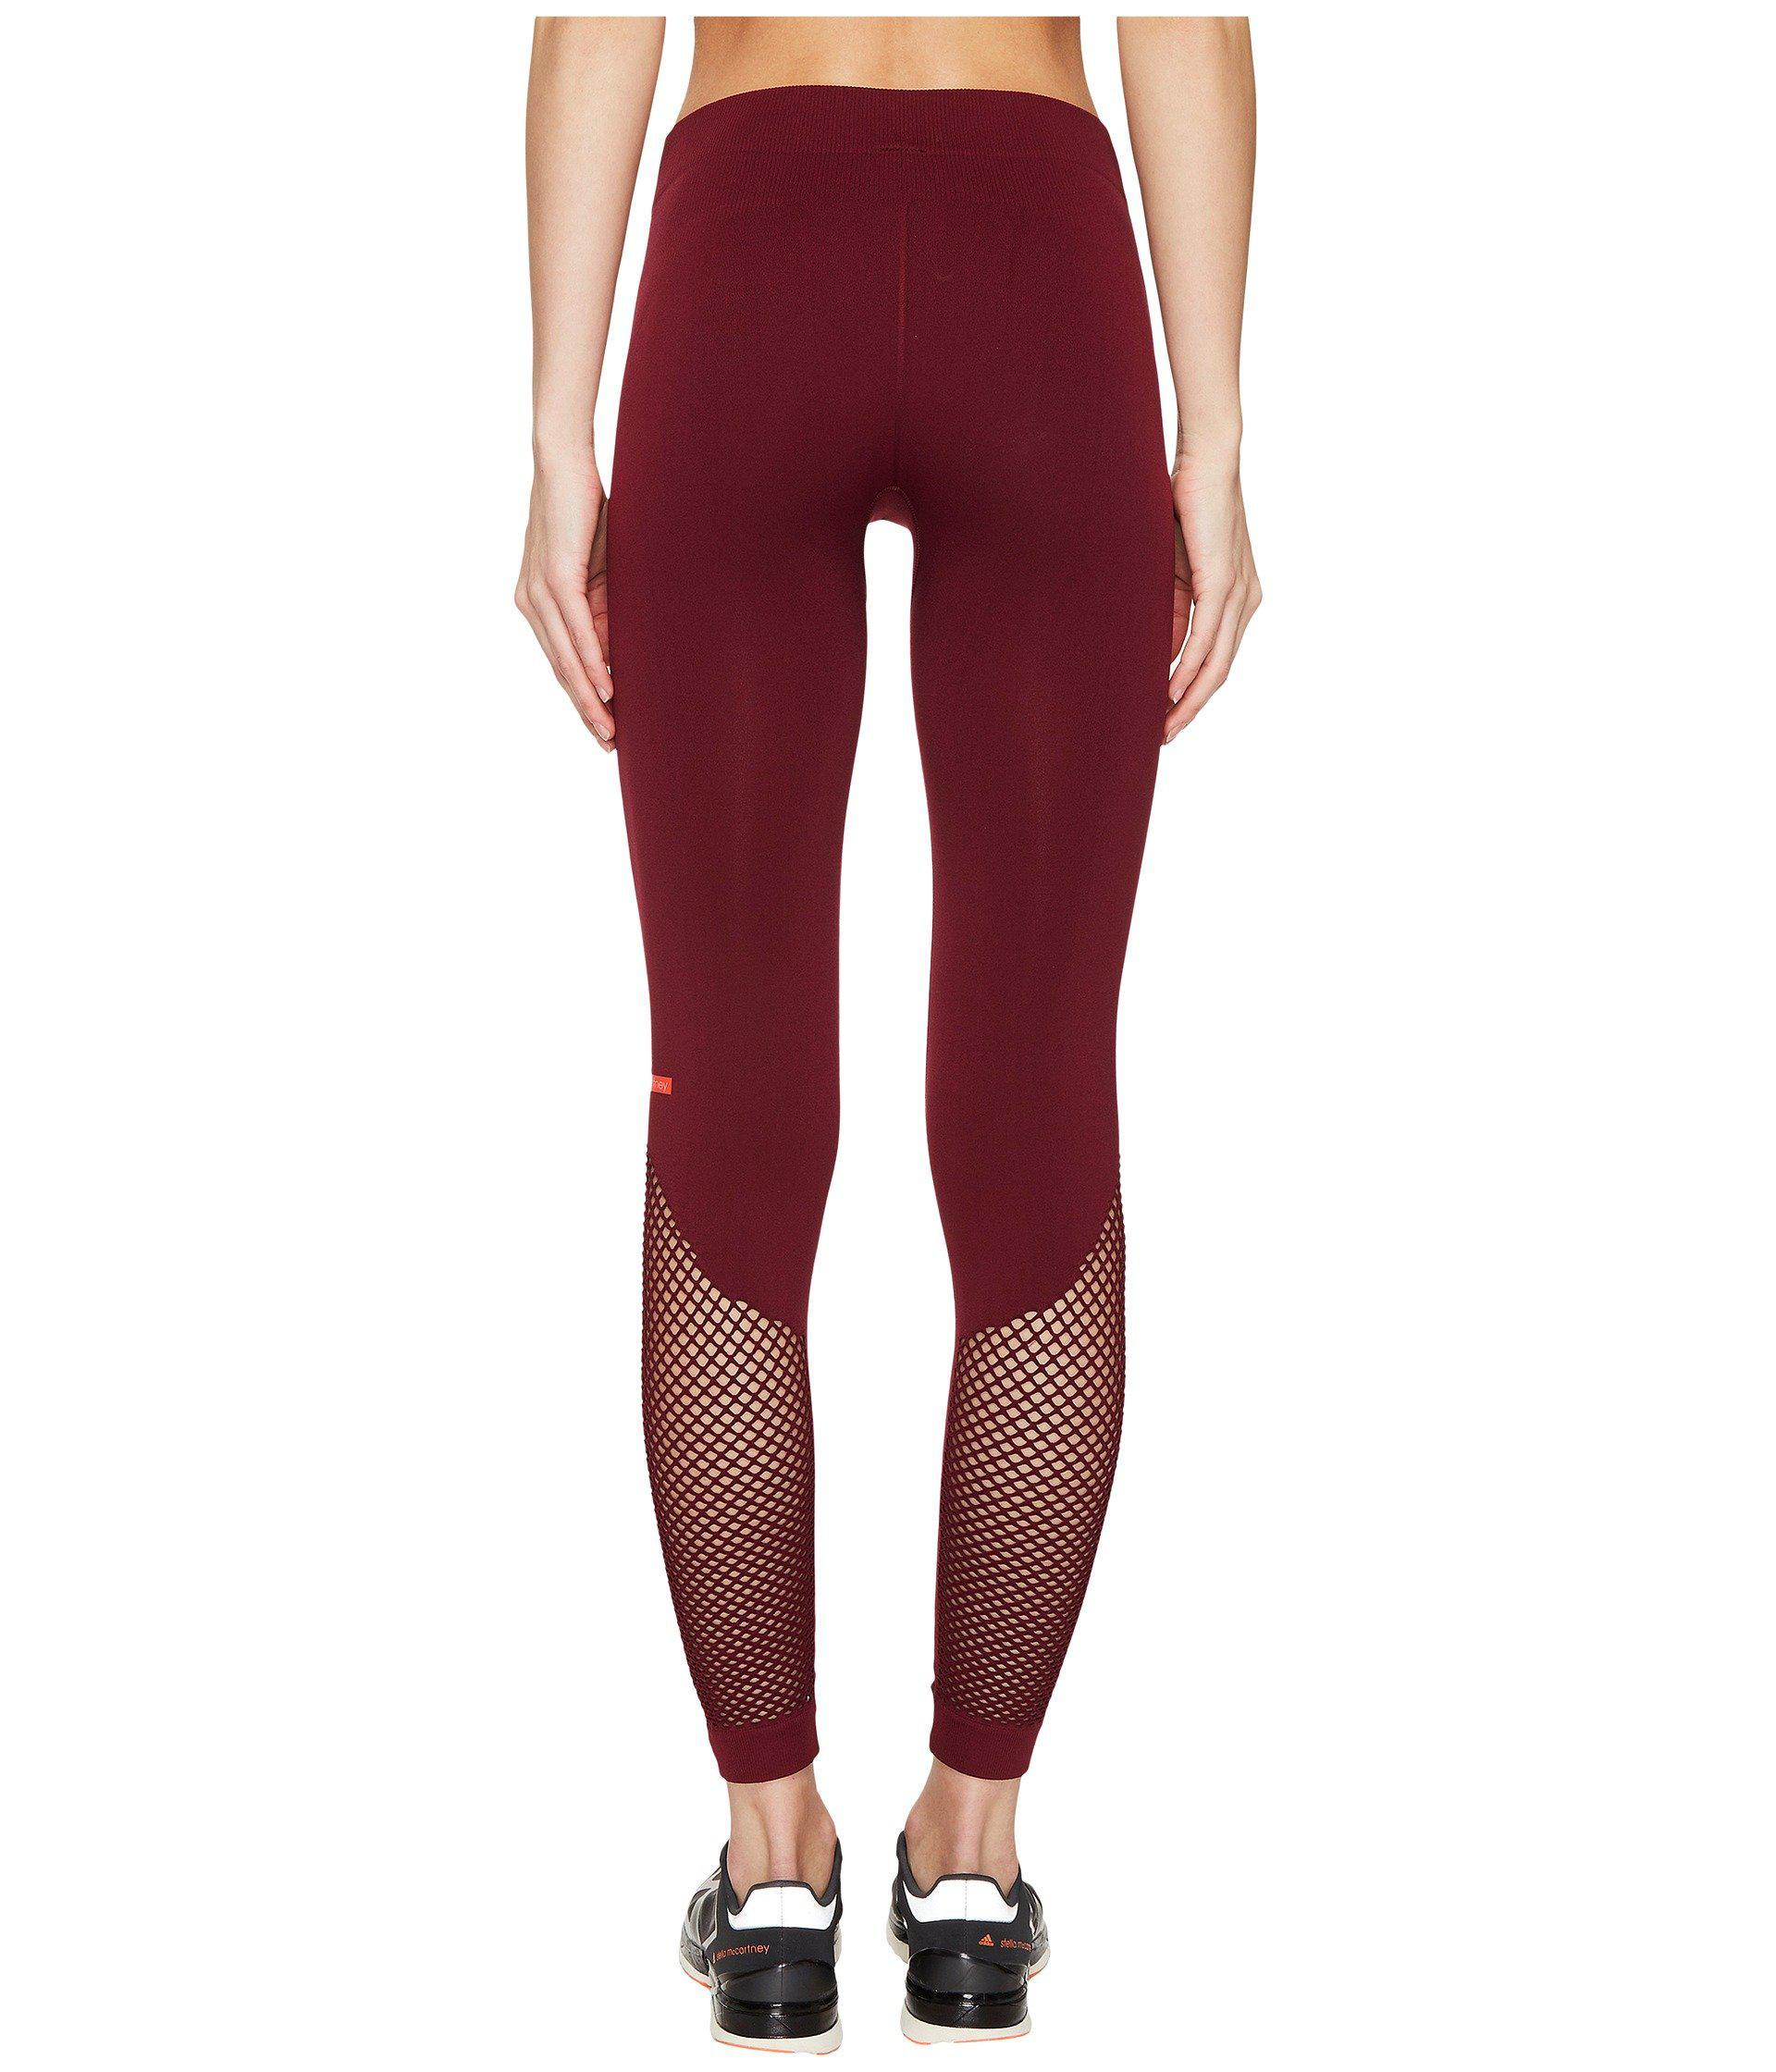 Lyst - adidas By Stella McCartney The Seamless Mesh Tights Bq1028 in Red 0d08b7259